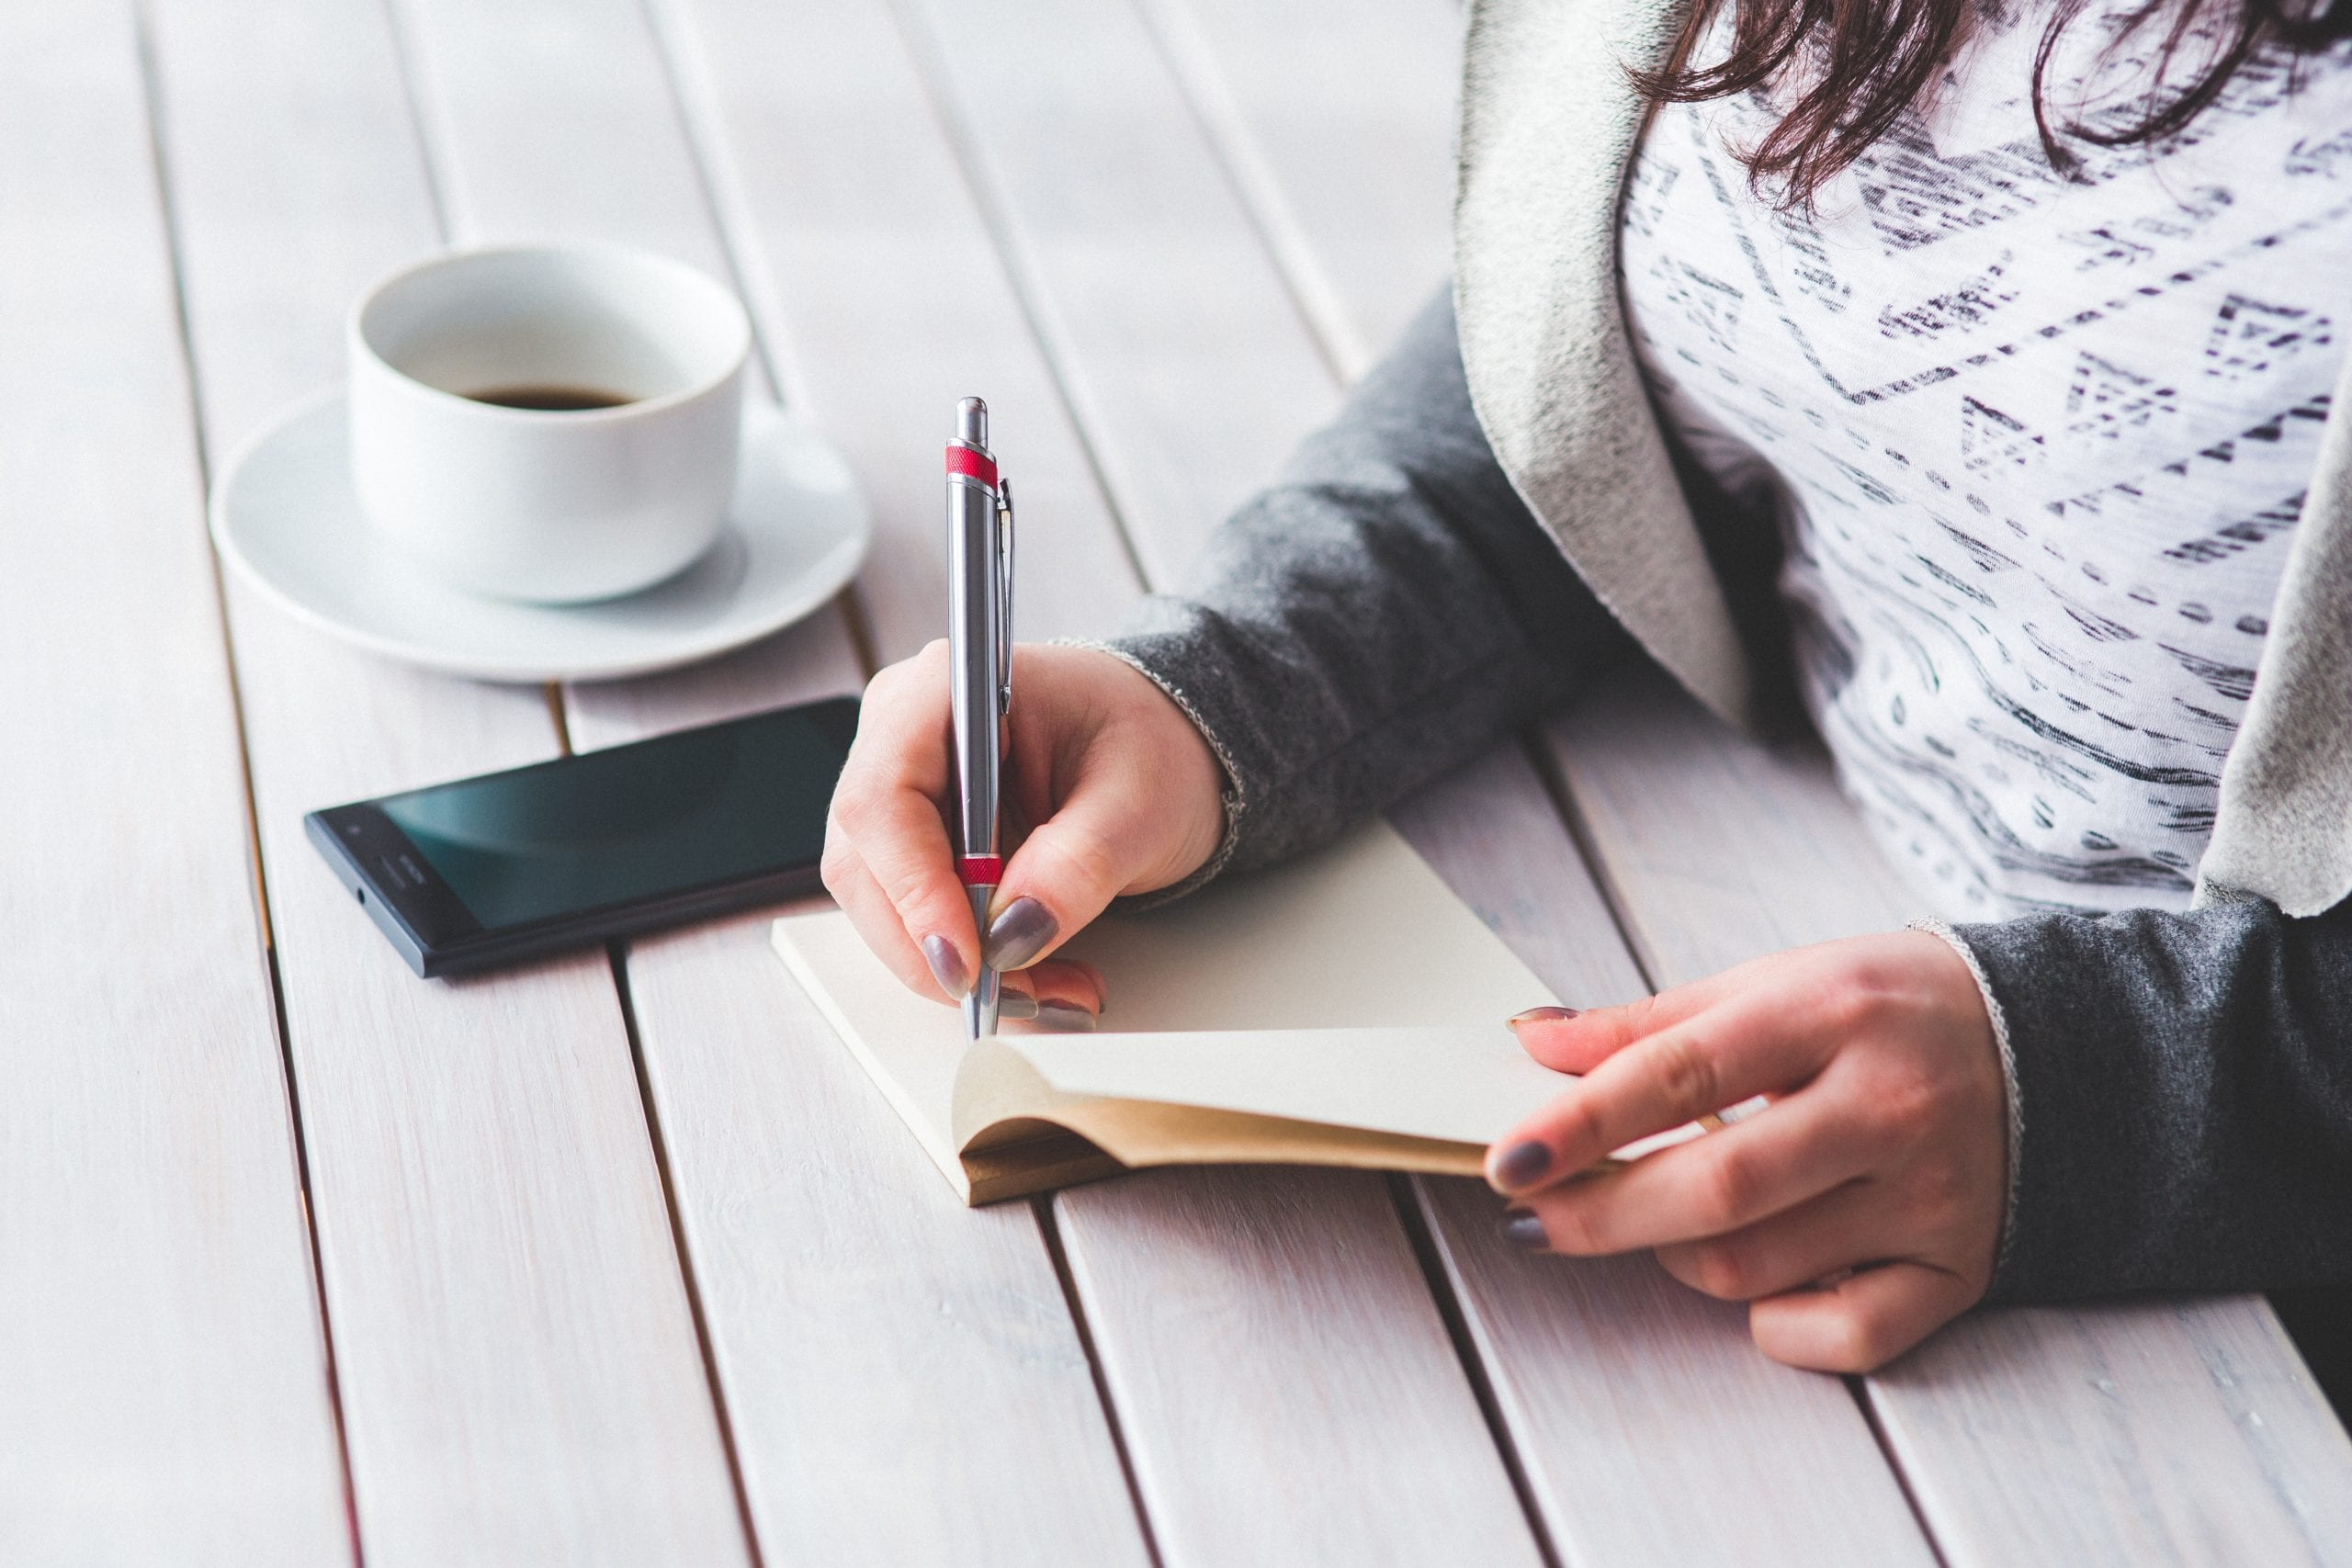 woman writing in journal with coffee cup next to her